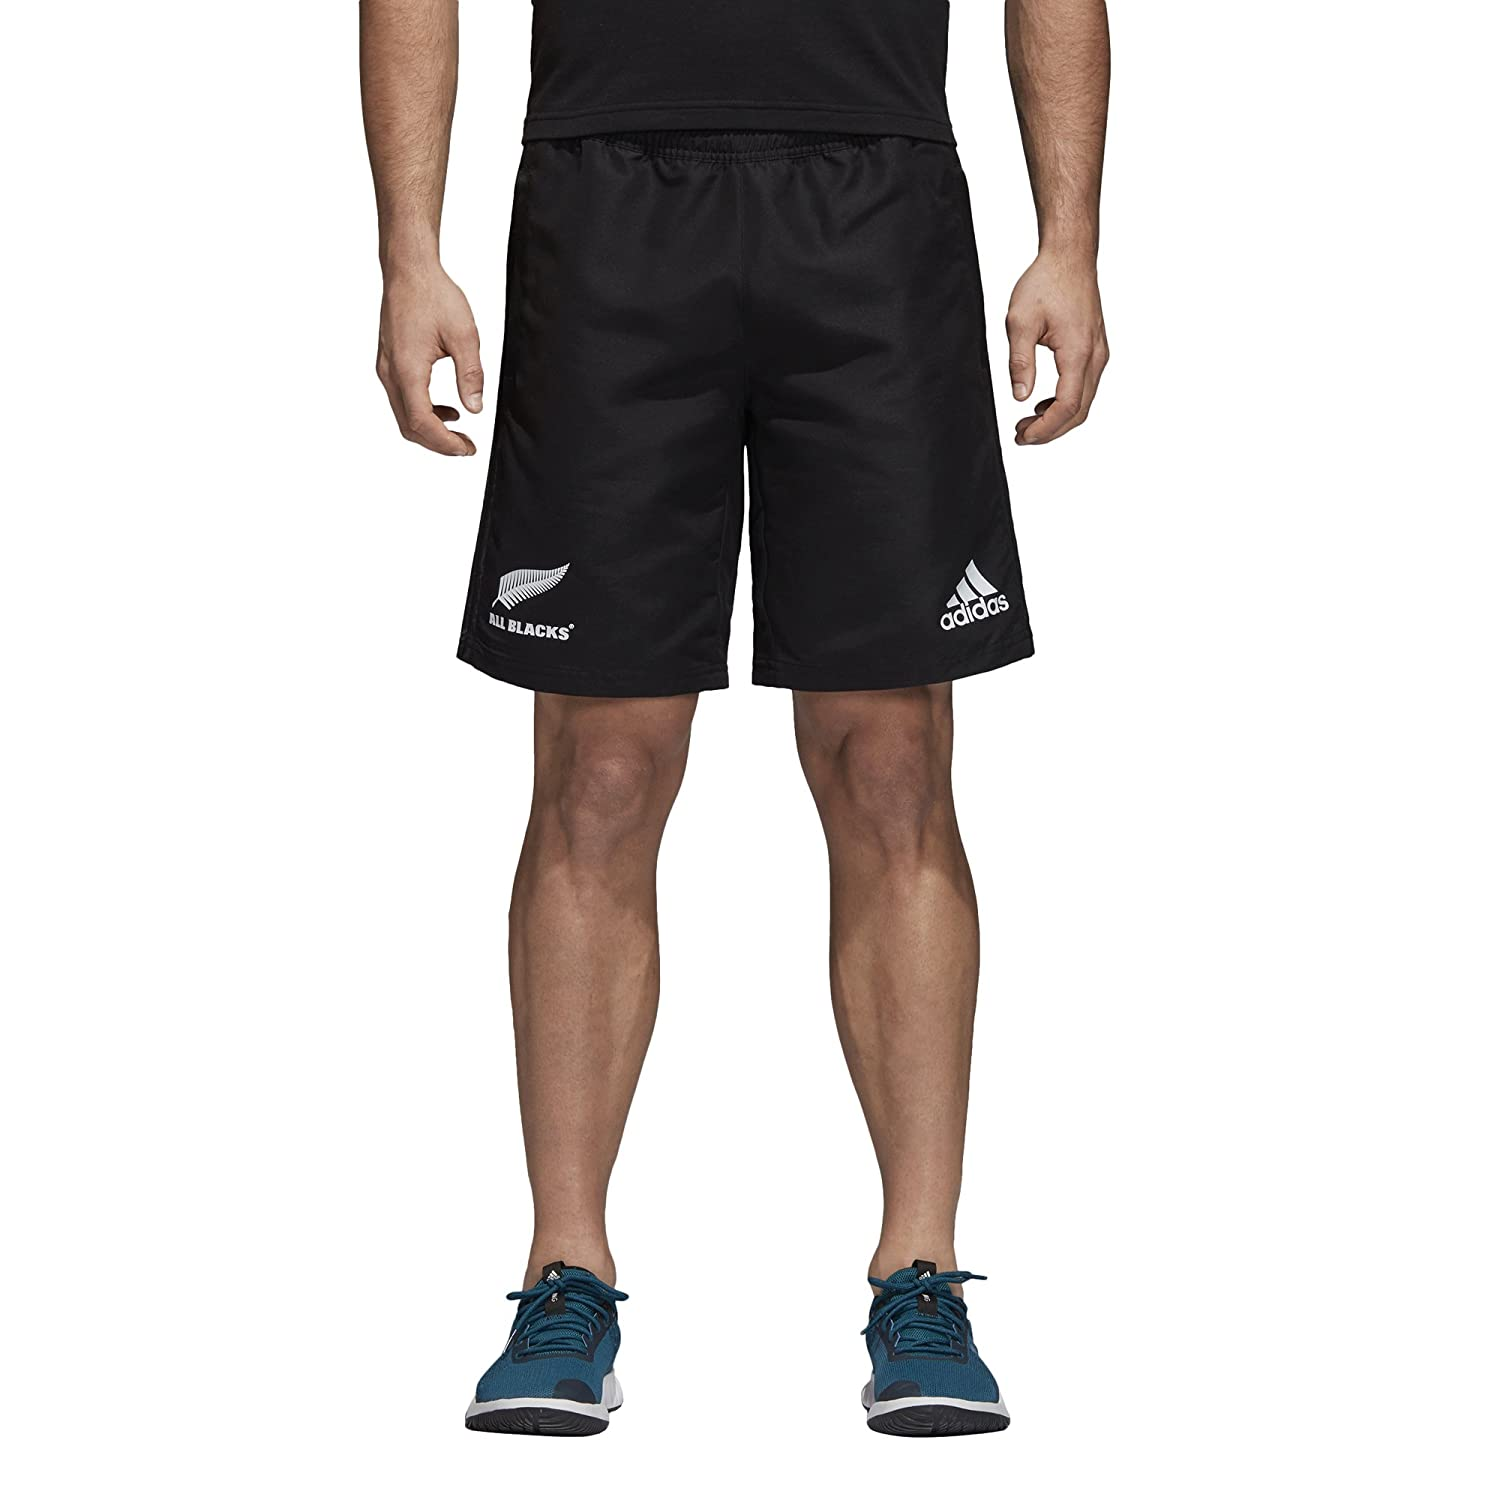 adidas Herren All Blacks Woven Shorts 1/2 BQ6304